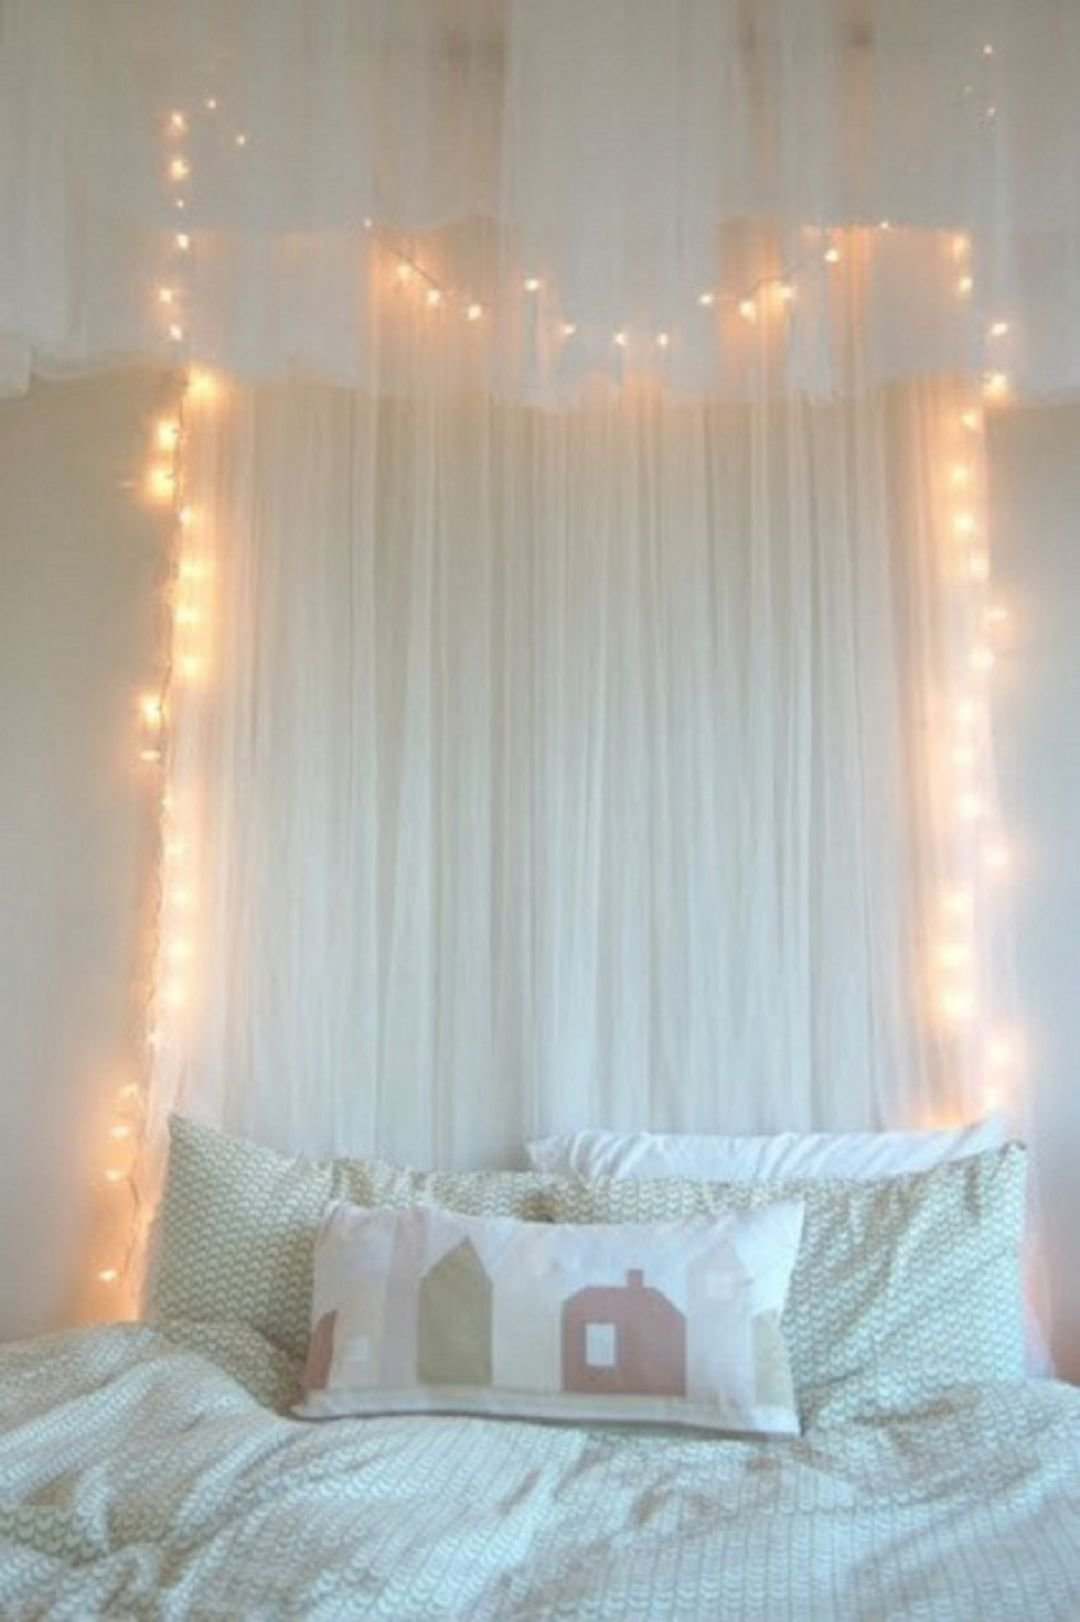 Best Curtain Fairy Lights Bedroom – Decoredo With Pictures